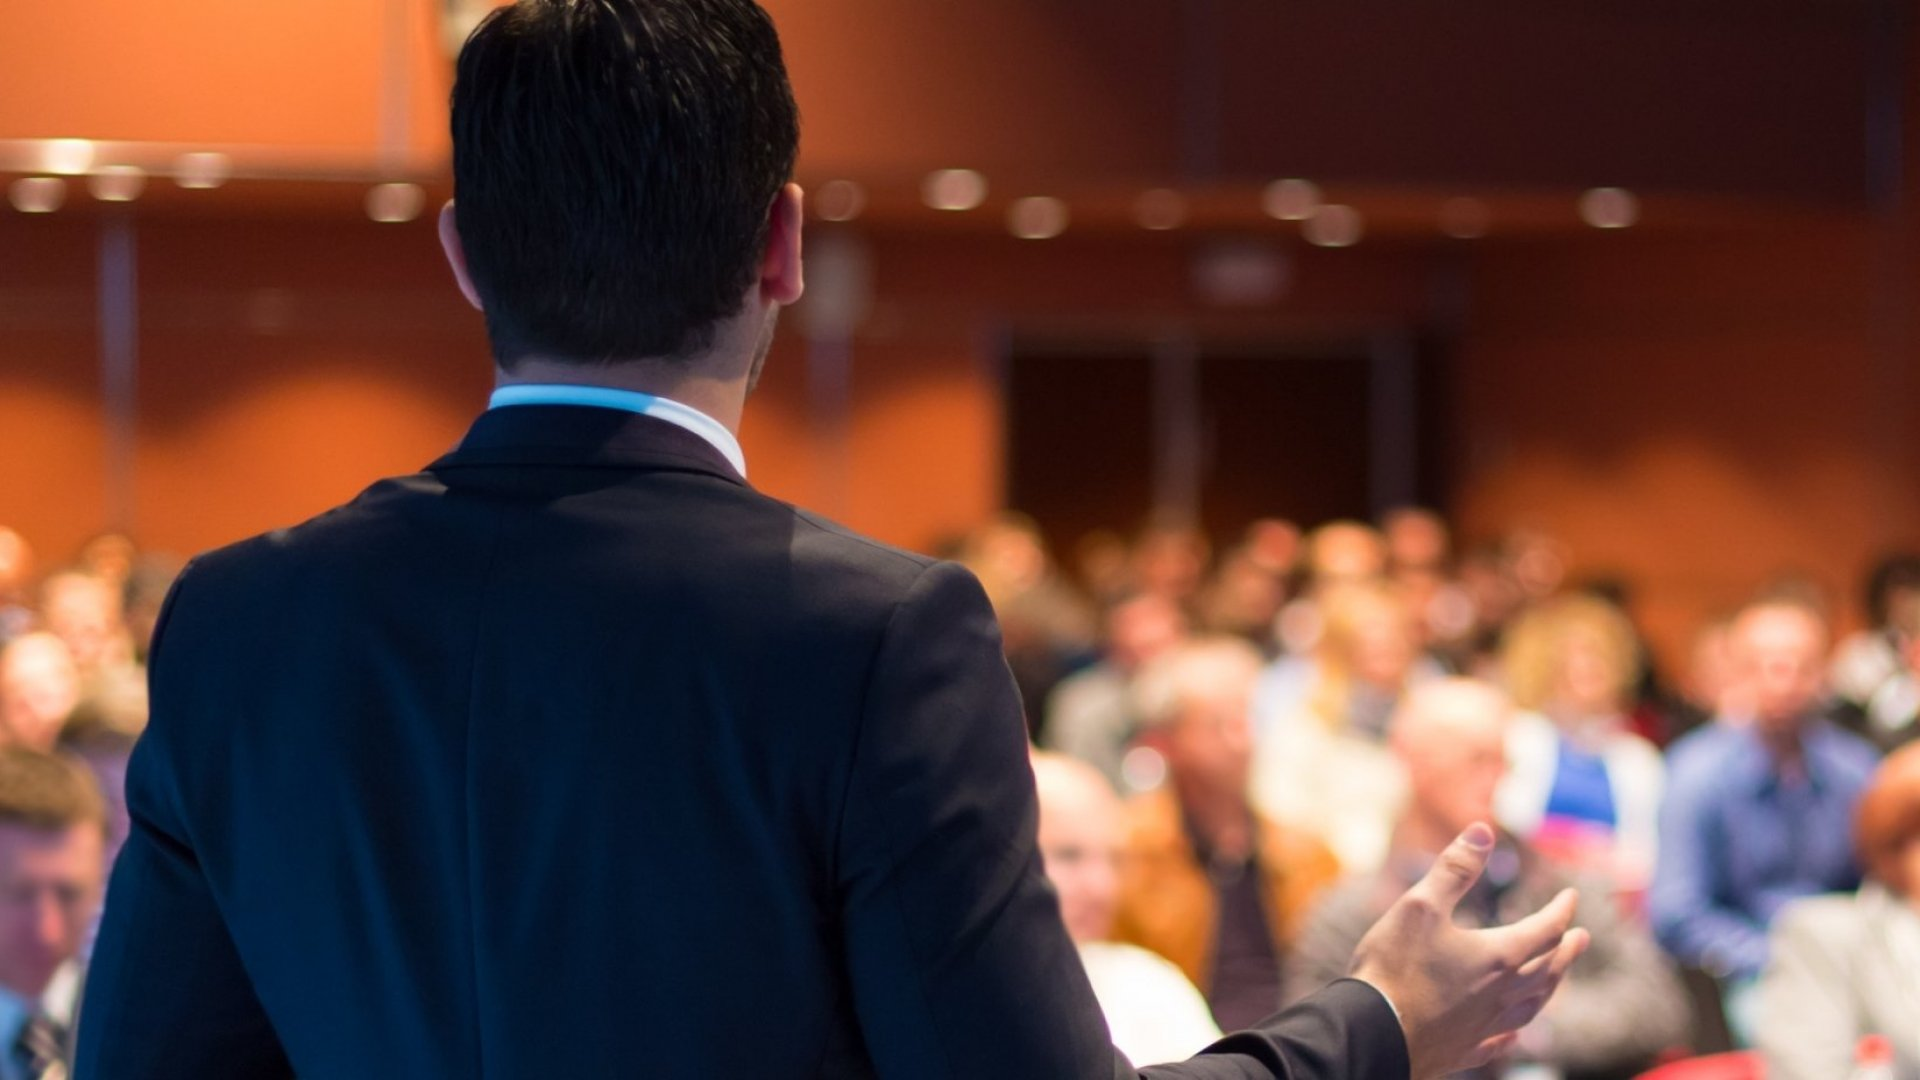 The Ultimate Checklist to Give an Outstanding Presentation